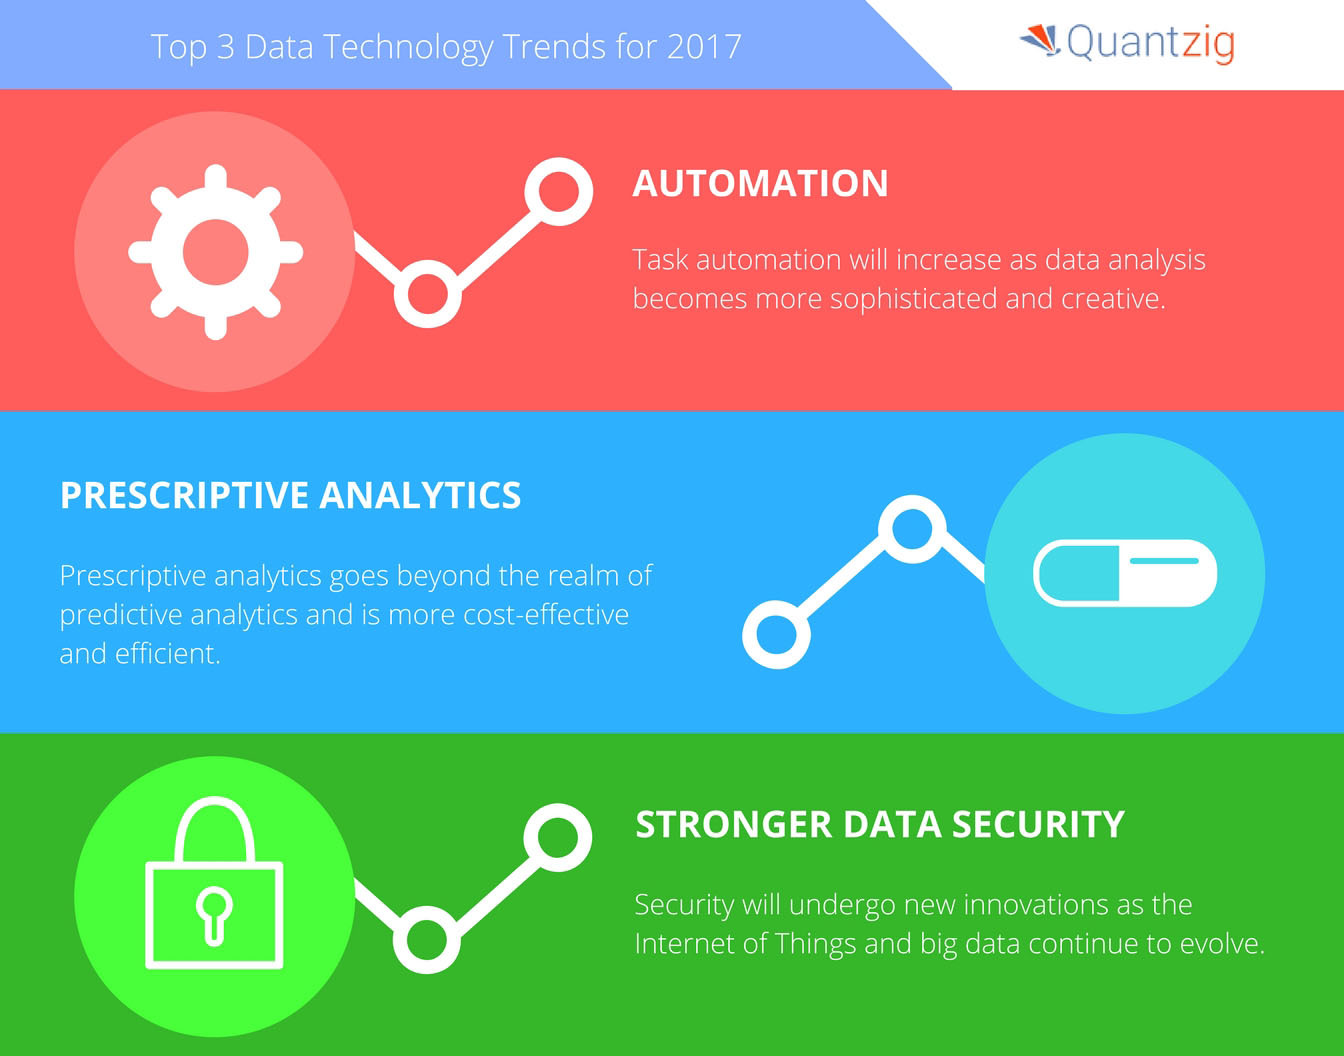 Quantzig's list of top data technology trends for 2017. (Graphic: Business Wire)